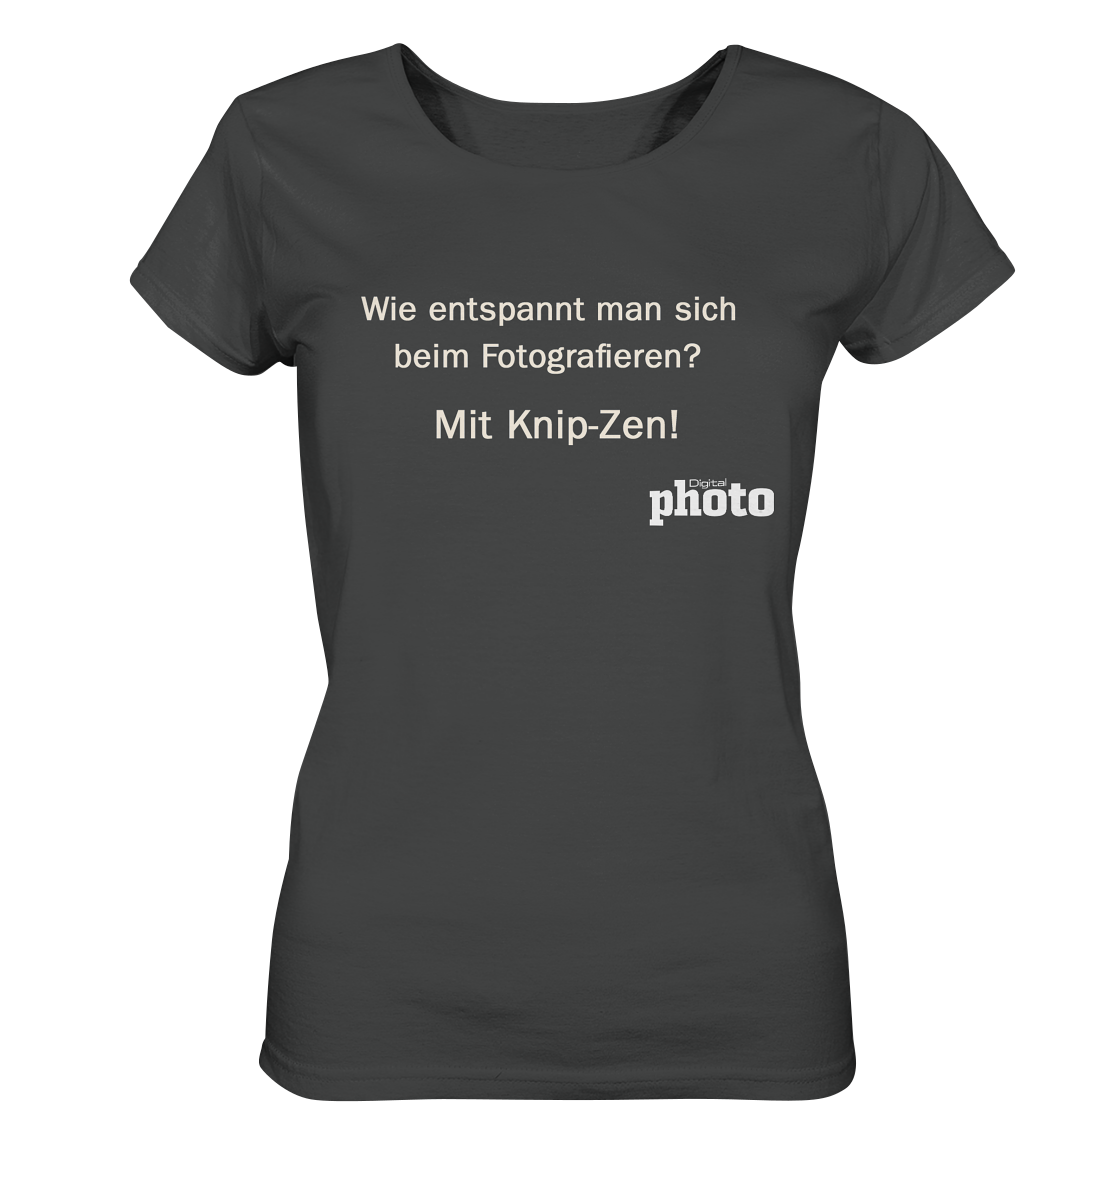 Knip-Zen - Ladies Shirt